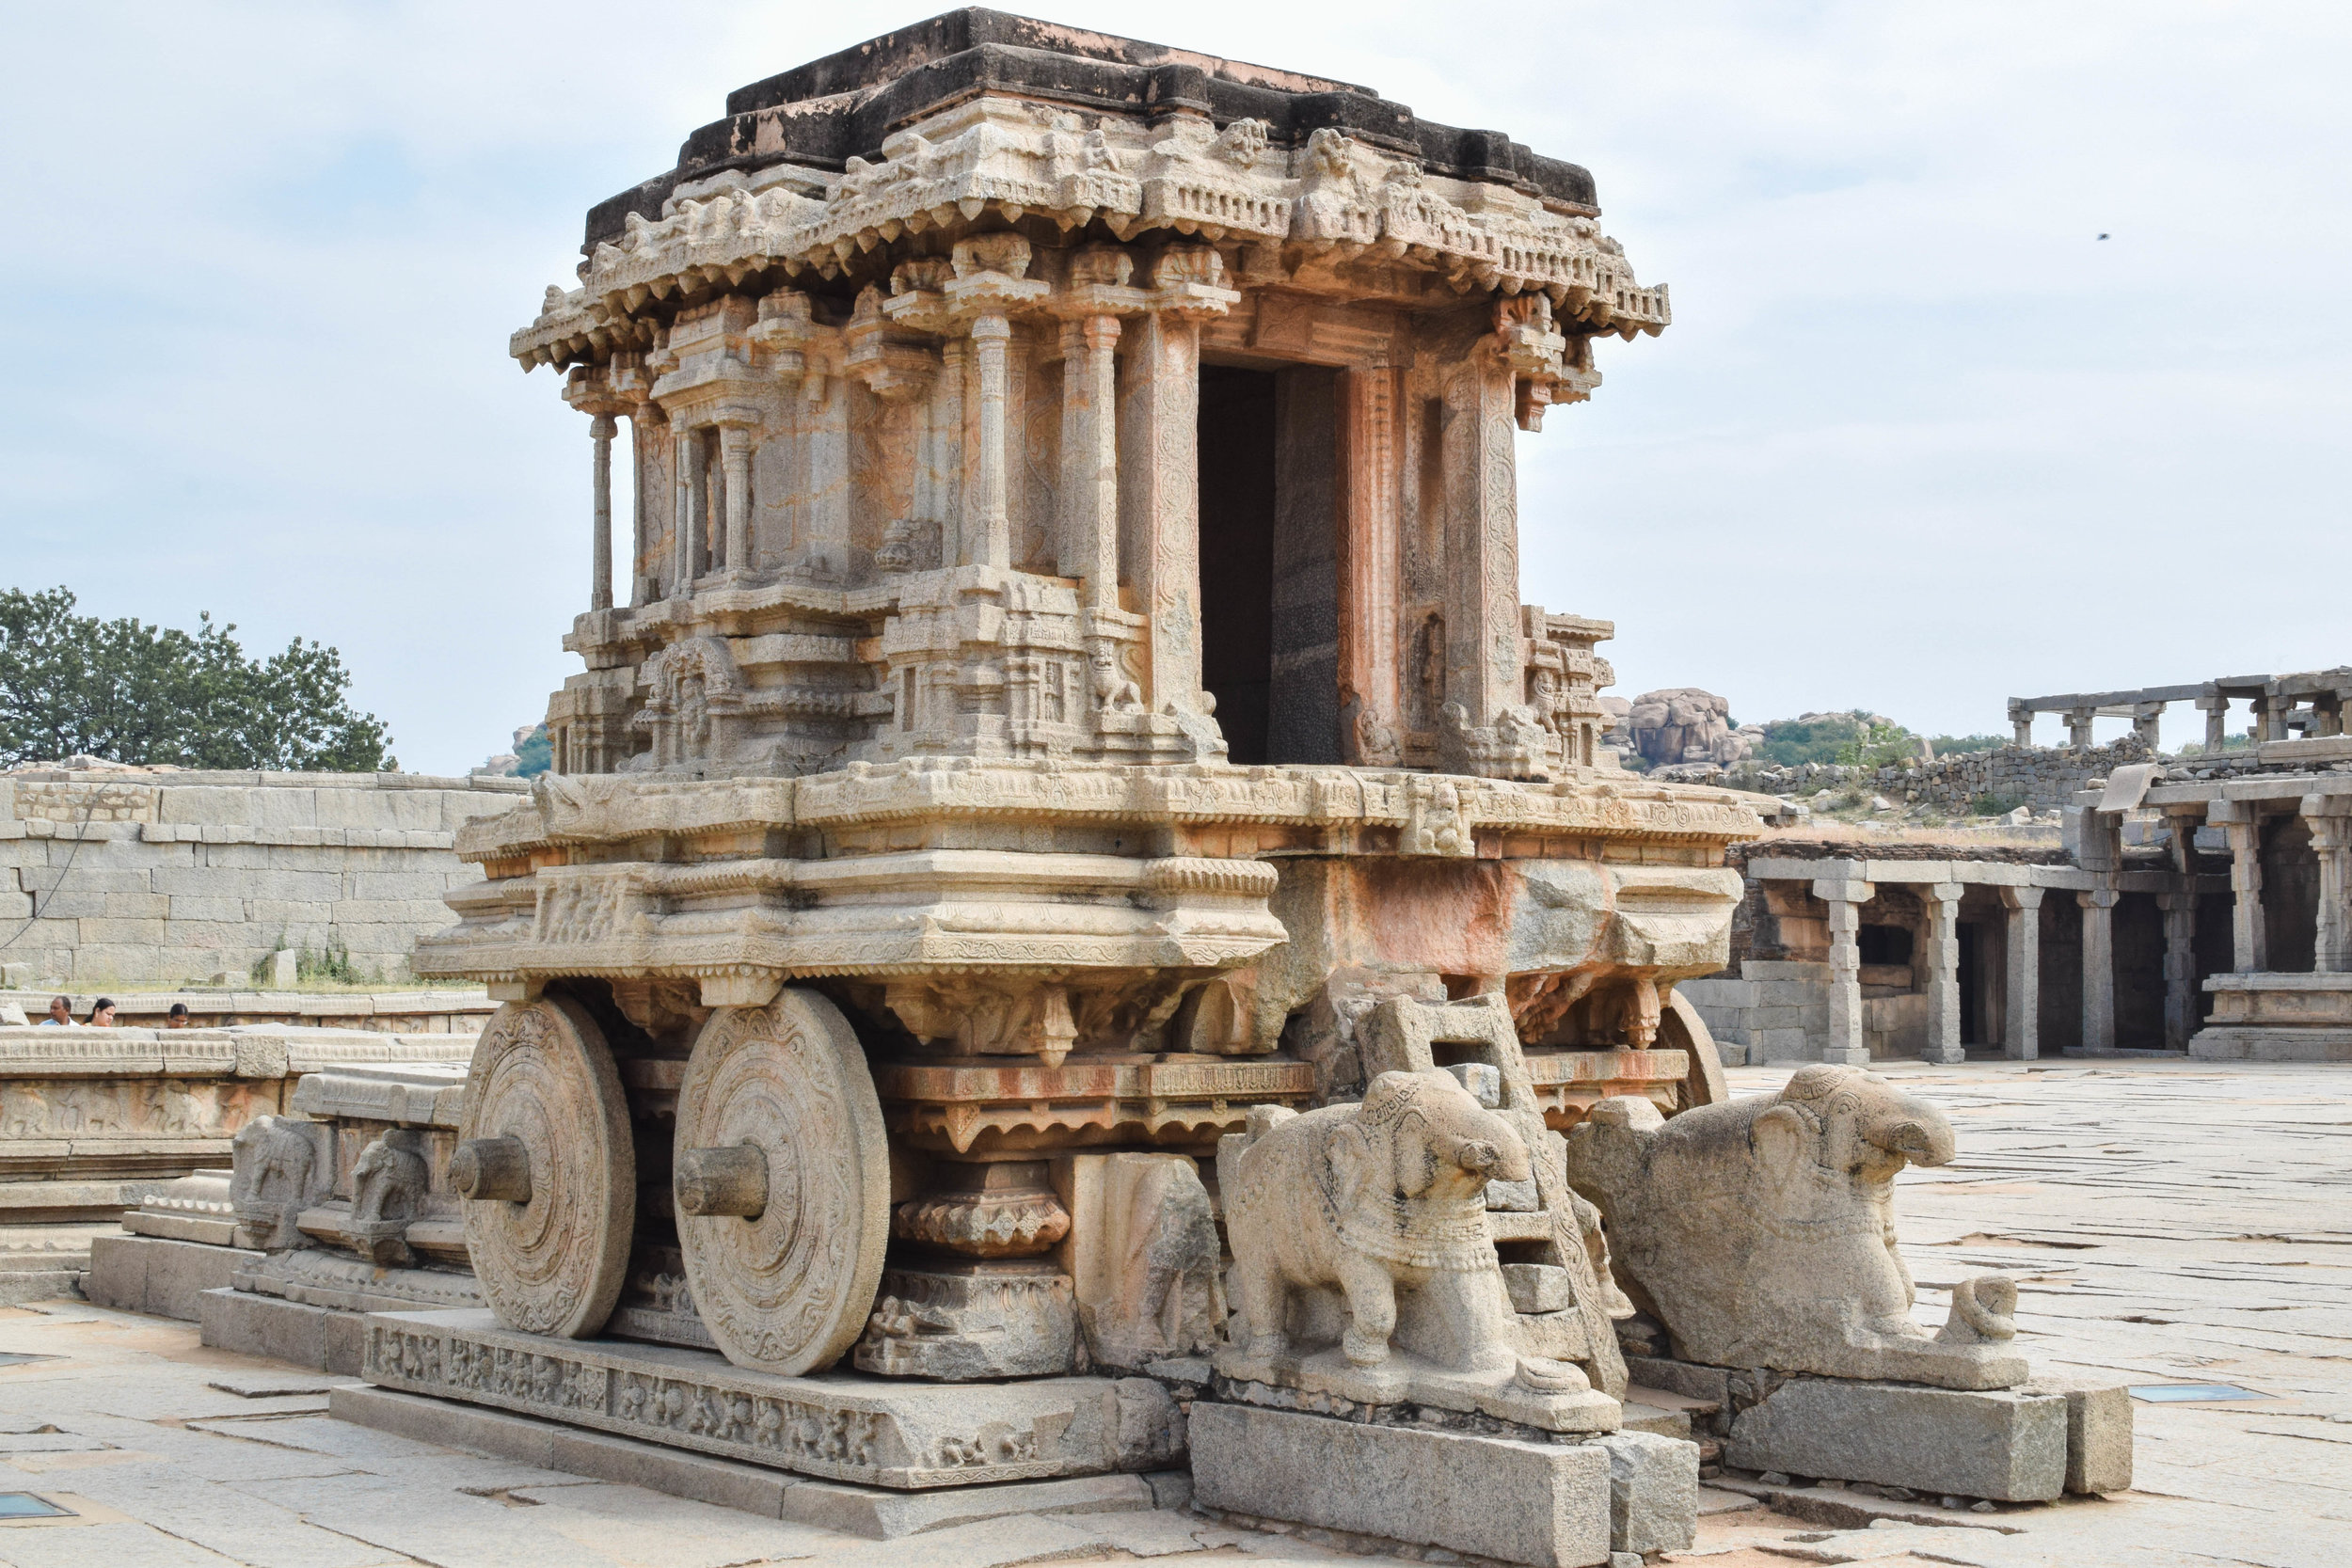 This chariot is definitely one of the most famous things in Hampi, and you can't tell from this angle but there were TONS of people around.